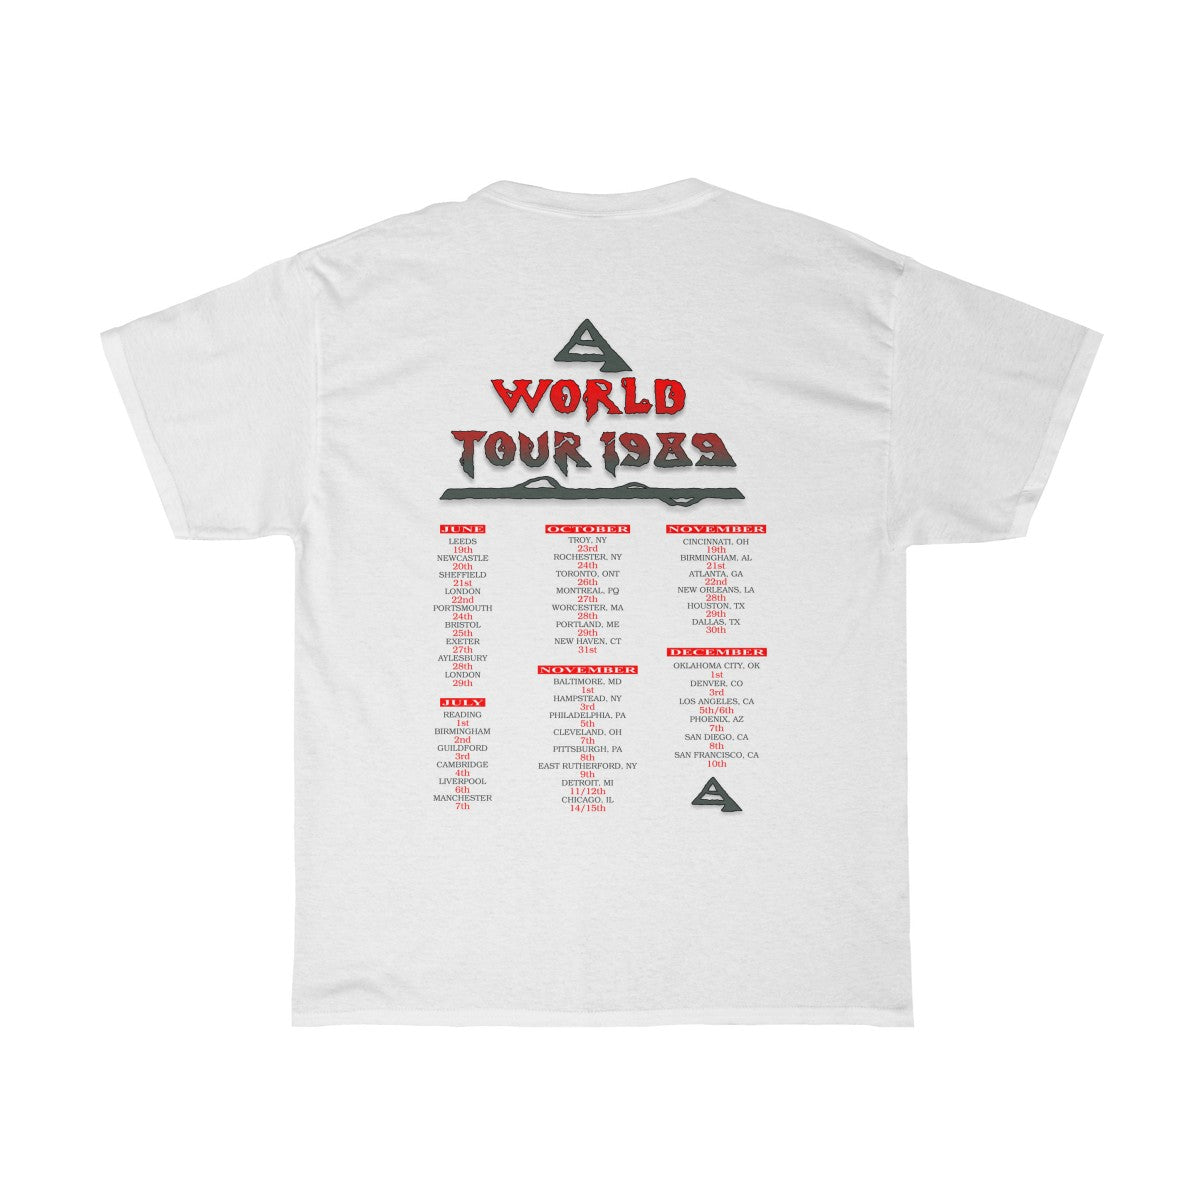 1989 World Tour Shirt. All Of The USA Dates